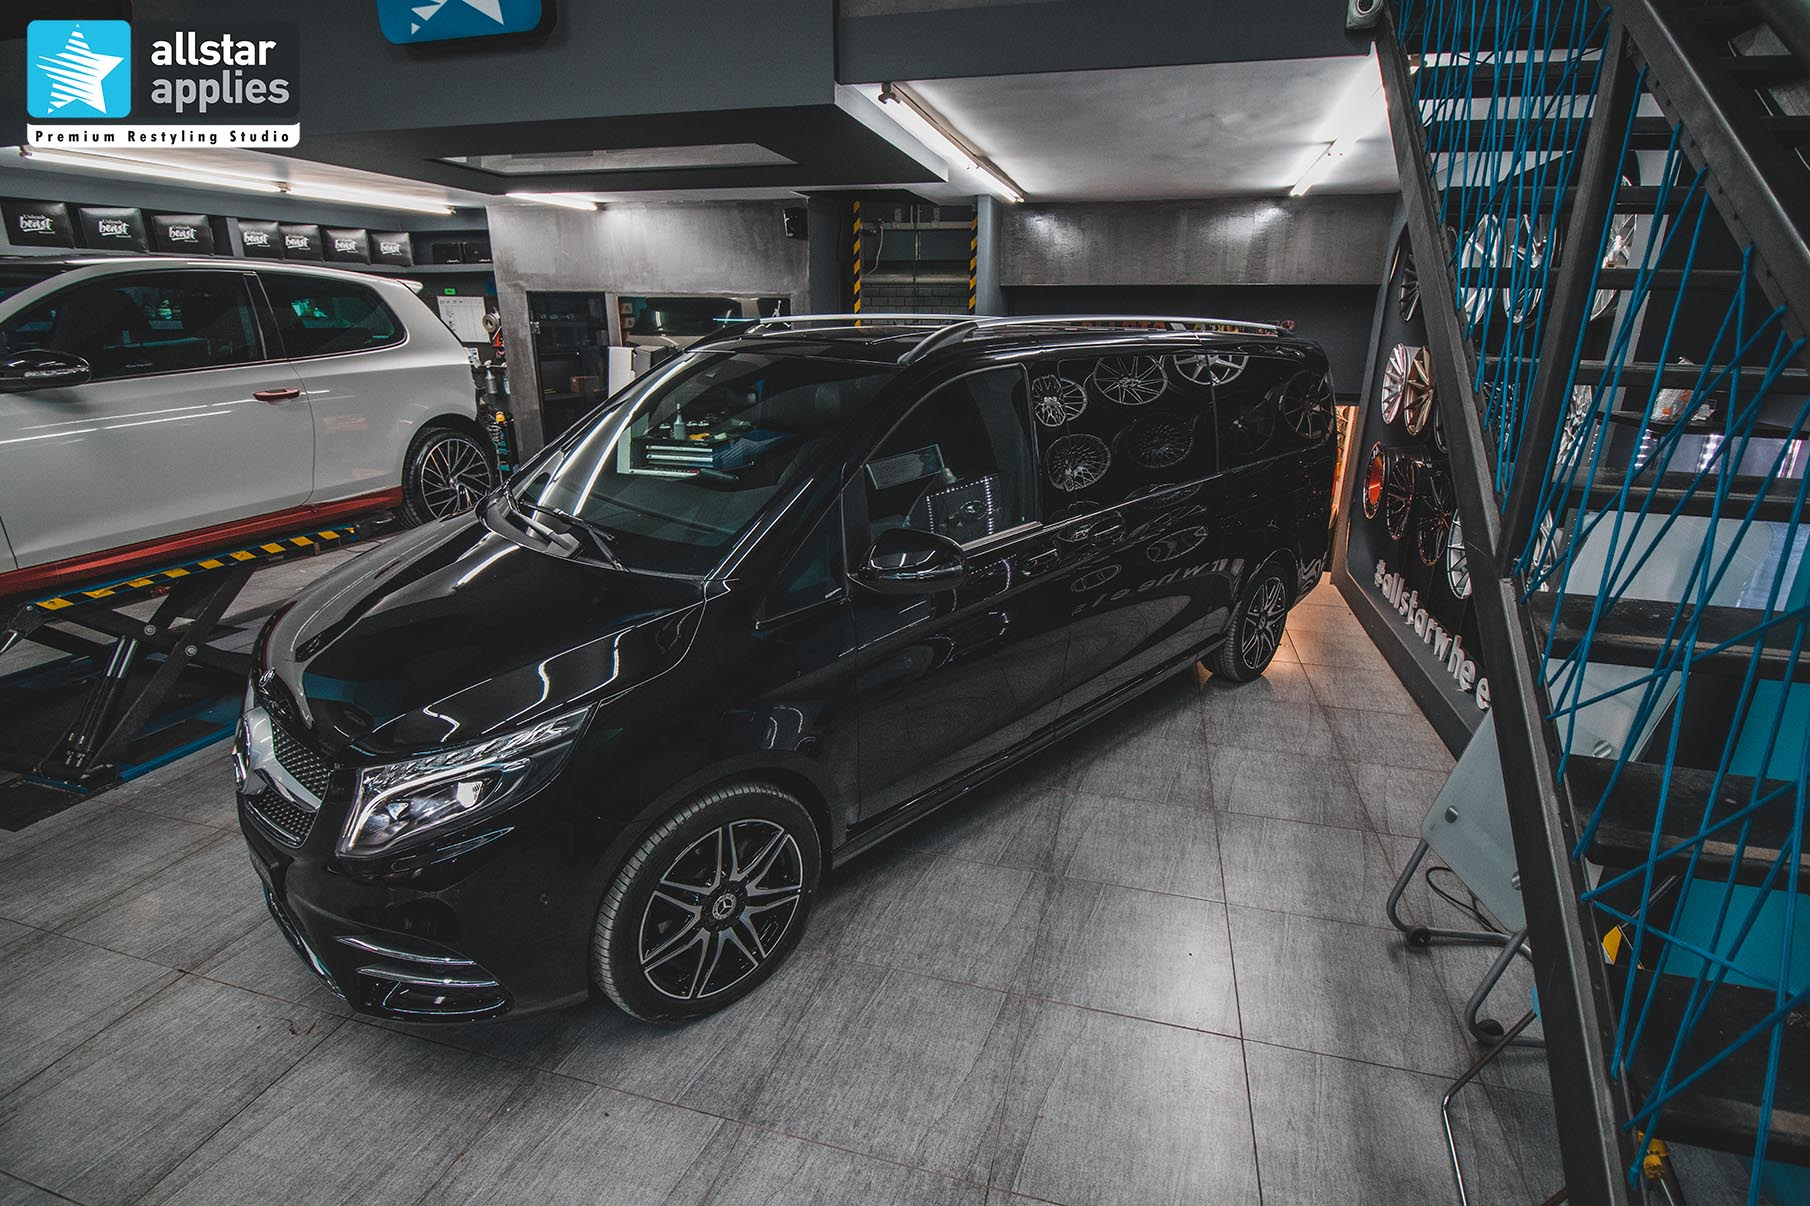 MERCEDES-BENZ V-CLASS PPF FRONT PACKAGE 10